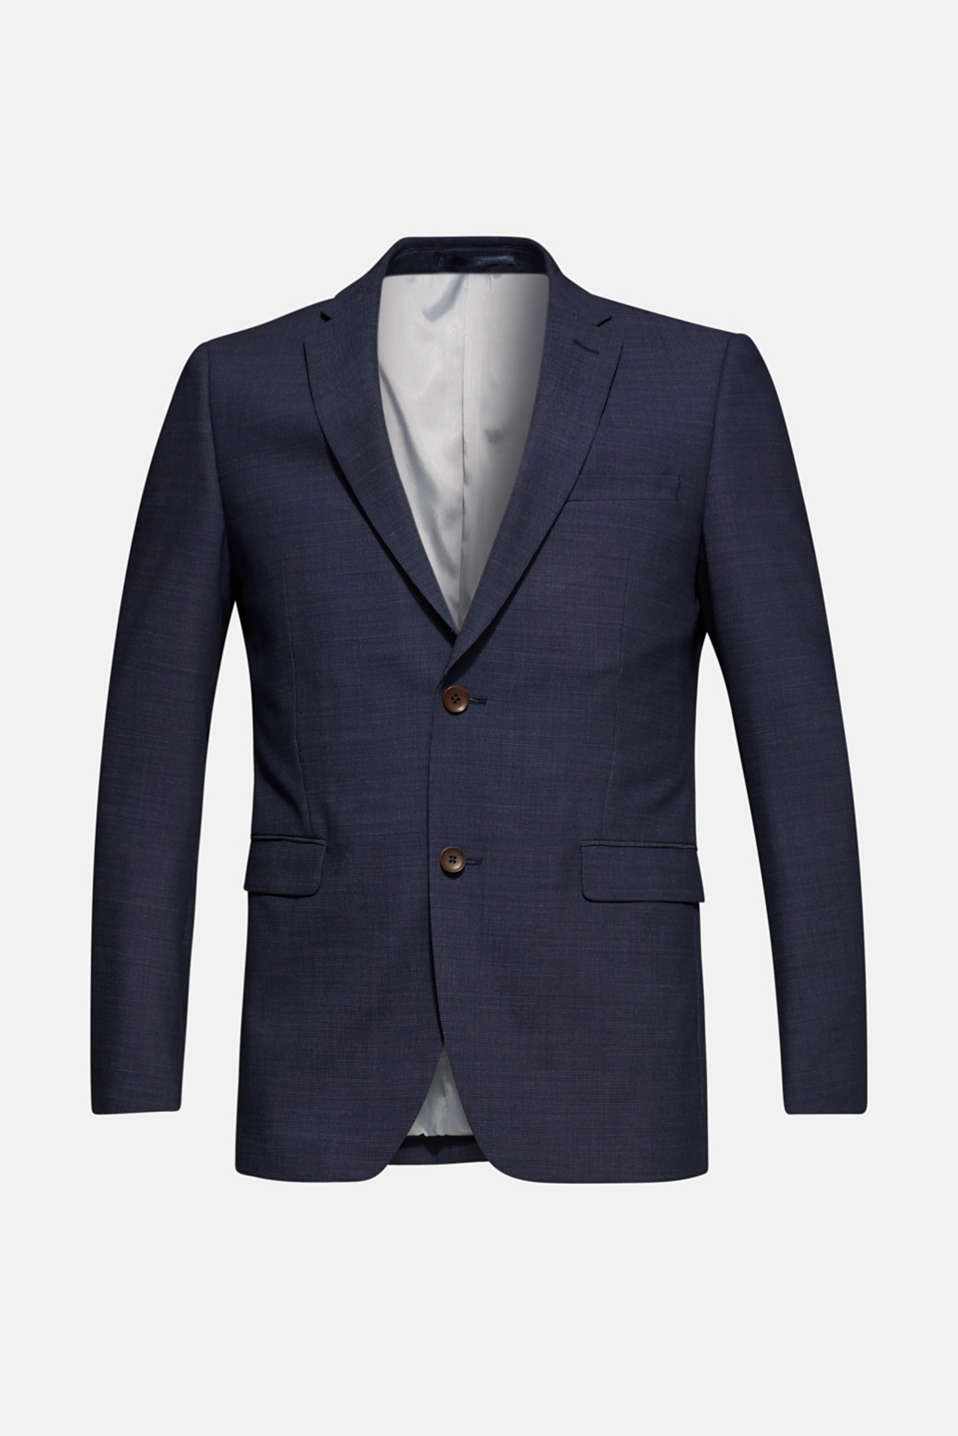 Blazers suit, NAVY, detail image number 6